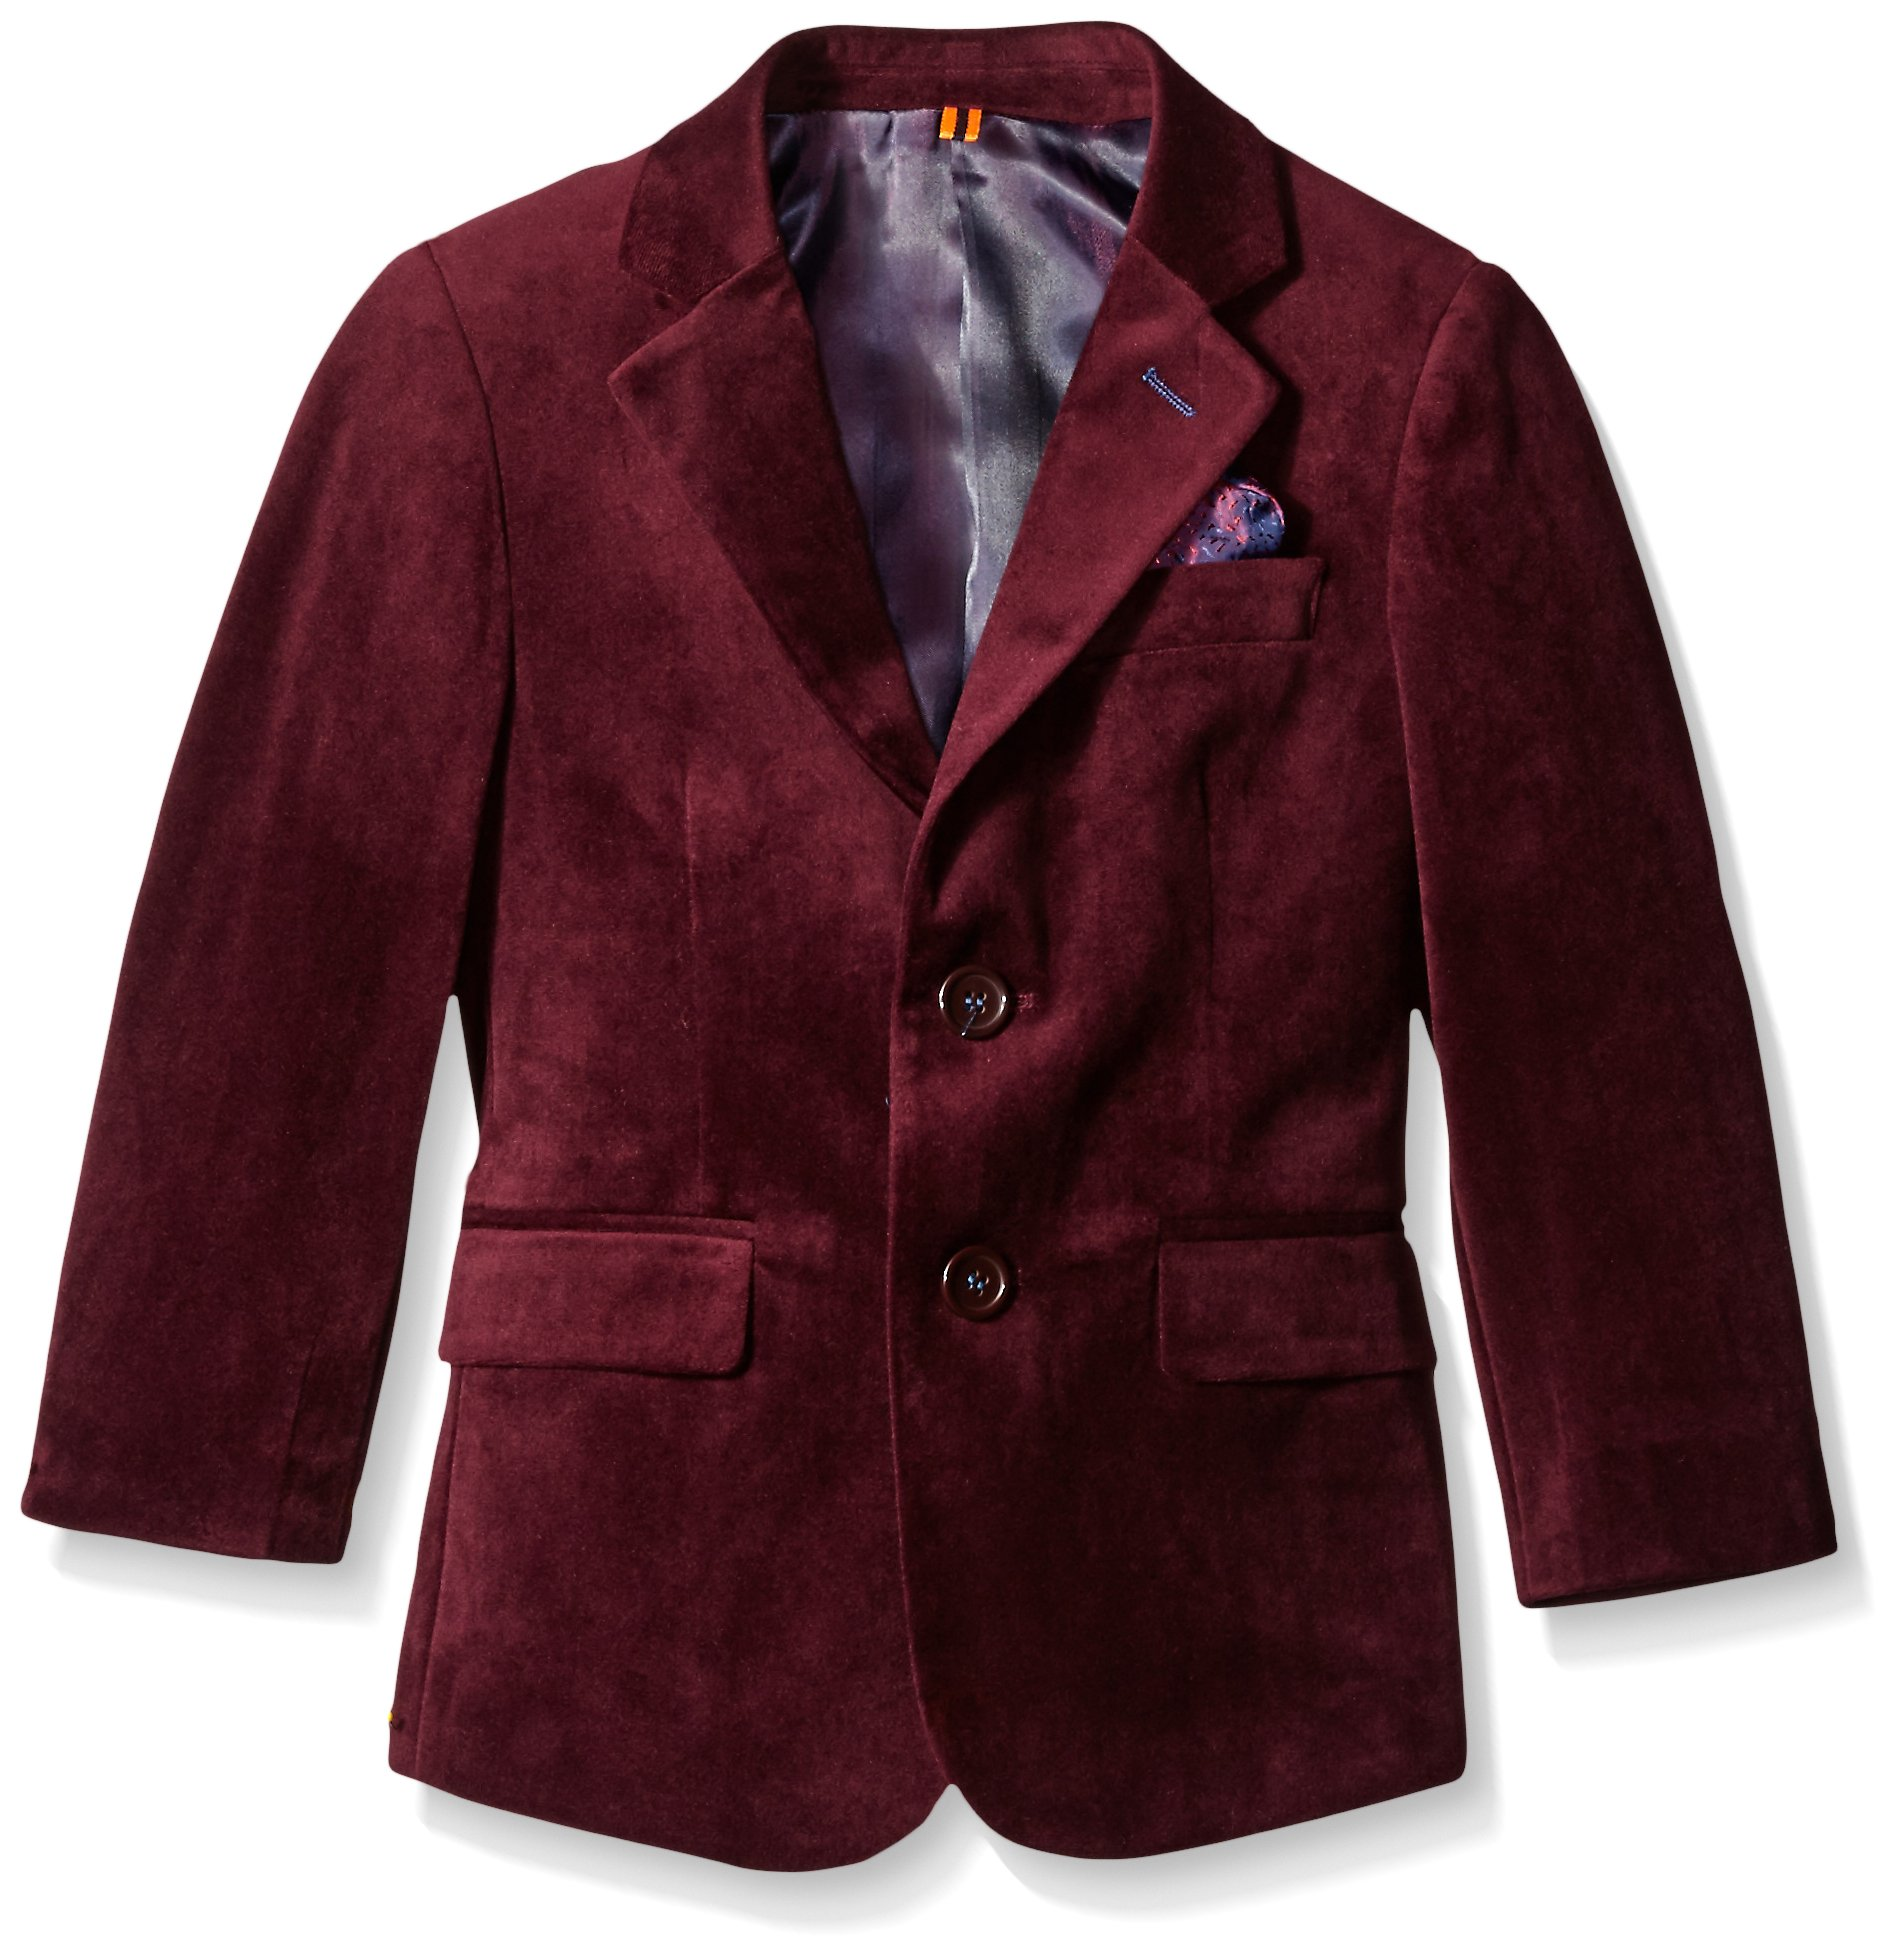 Isaac Mizrahi Boys' Big Boys' Single-Breasted Velvet Blazer, Burgundy, 16 by Isaac Mizrahi